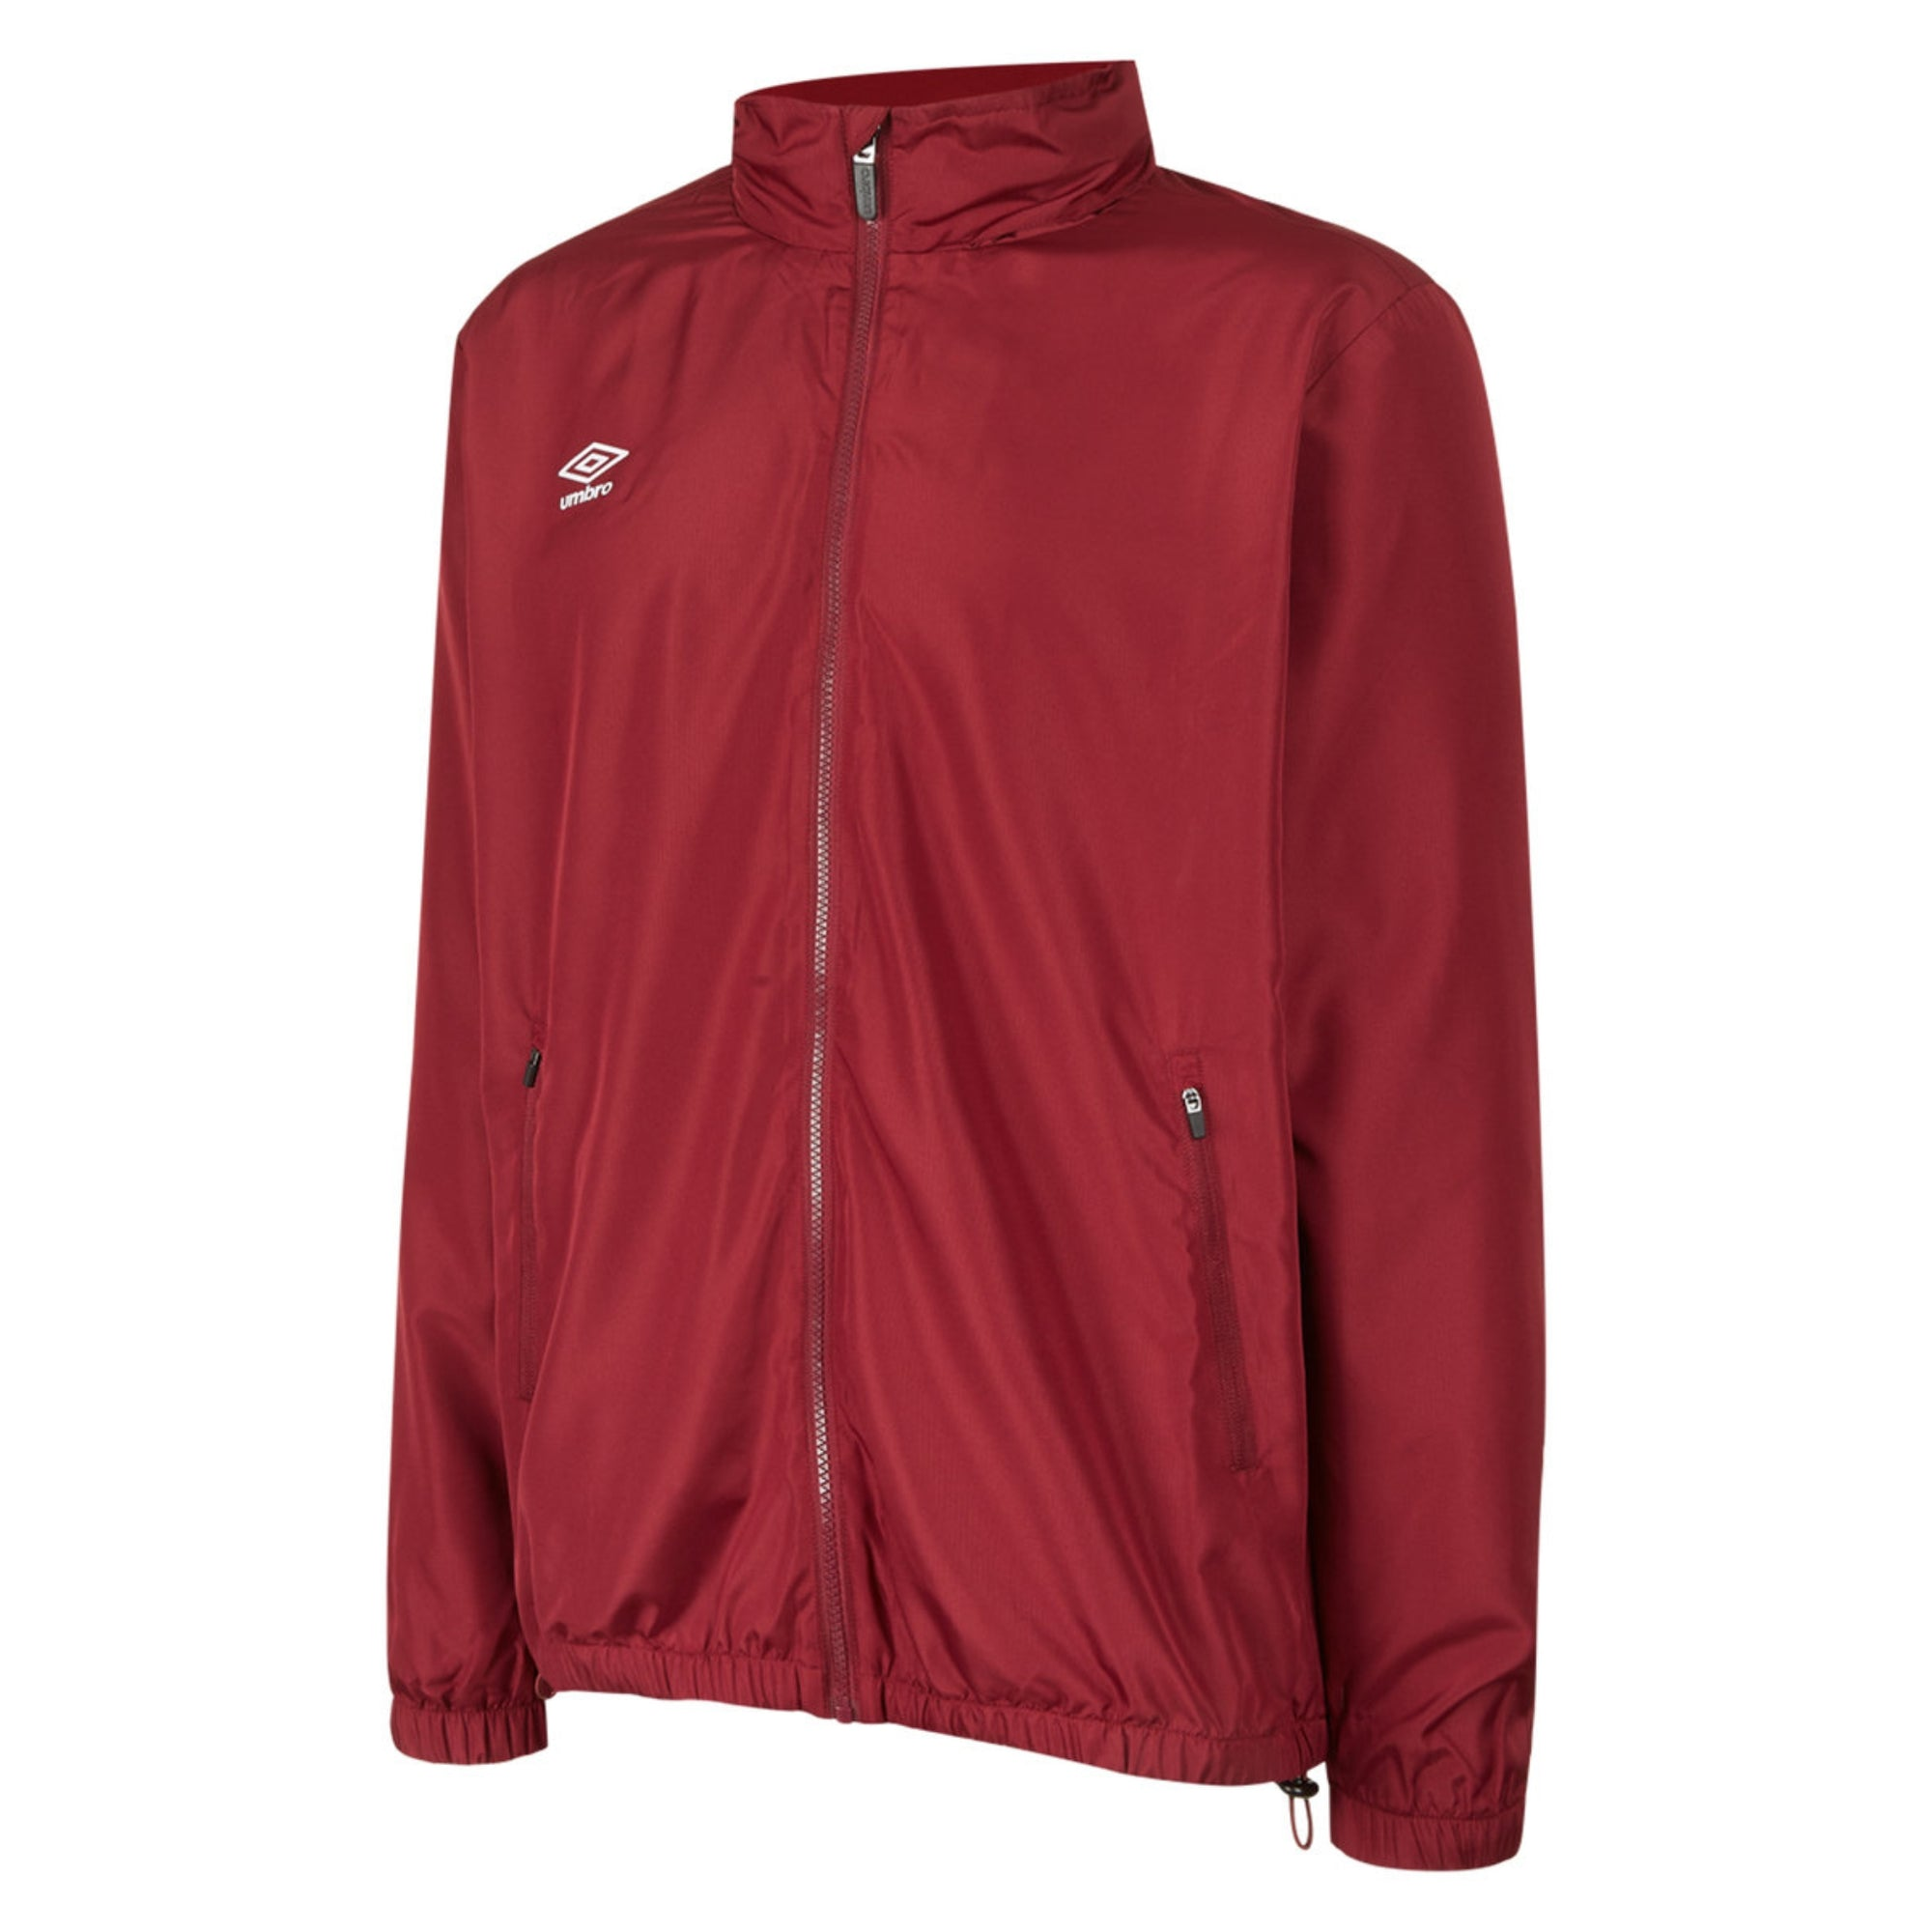 Umbro Club Essential Light Rain Jacket - New Claret